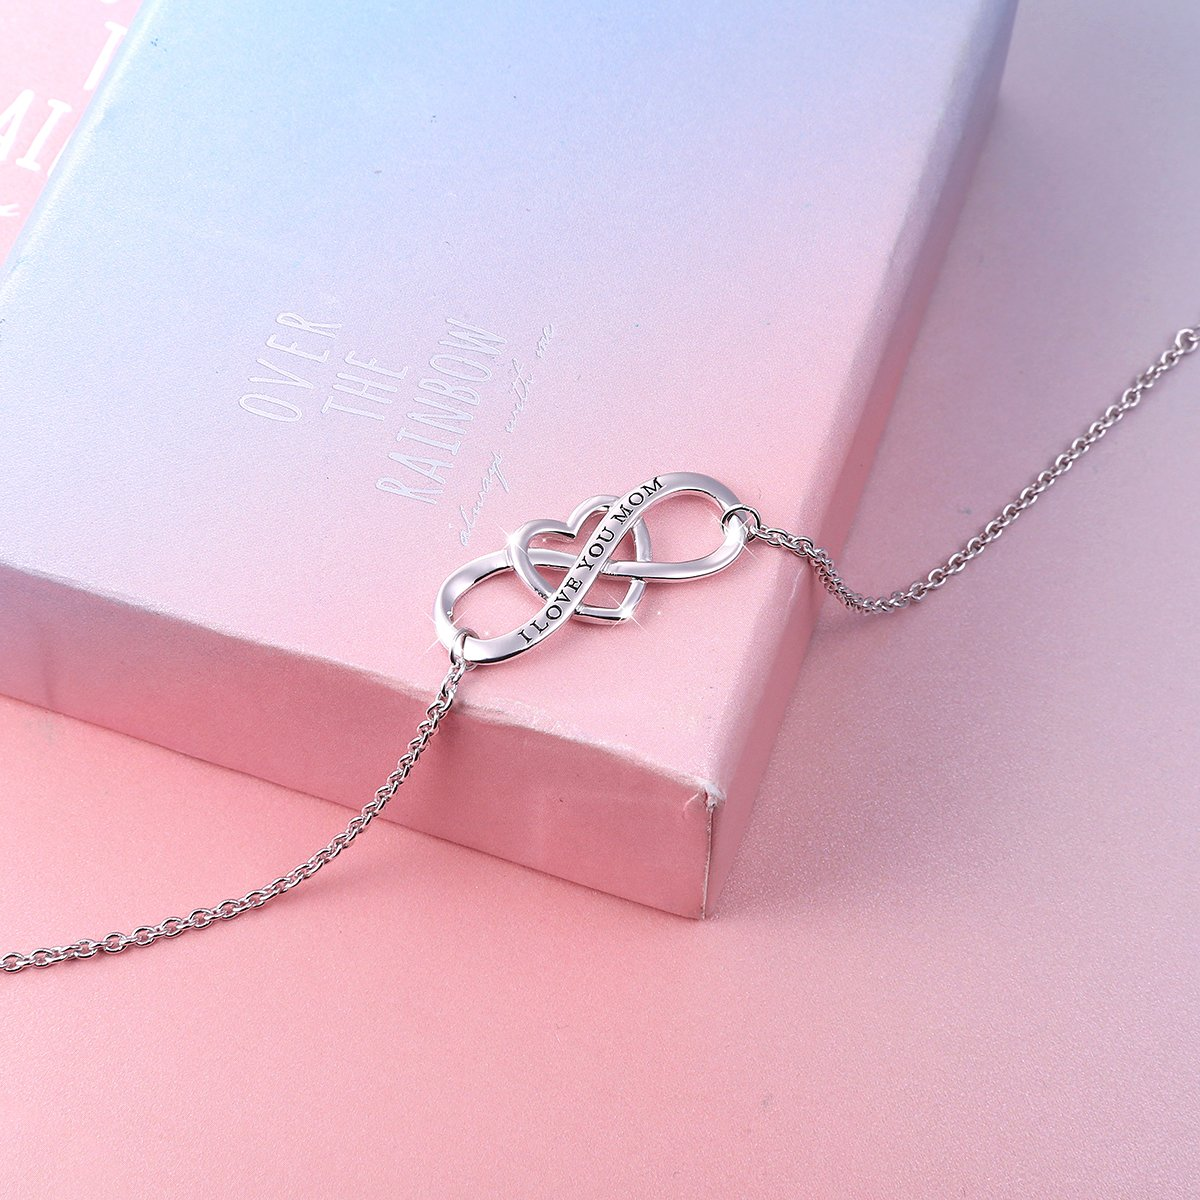 """SILVER MOUNTAIN S925 Sterling Silver """"I Love You Mom """" Heart Infinity Bracelet for Mother by SILVER MOUNTAIN (Image #5)"""